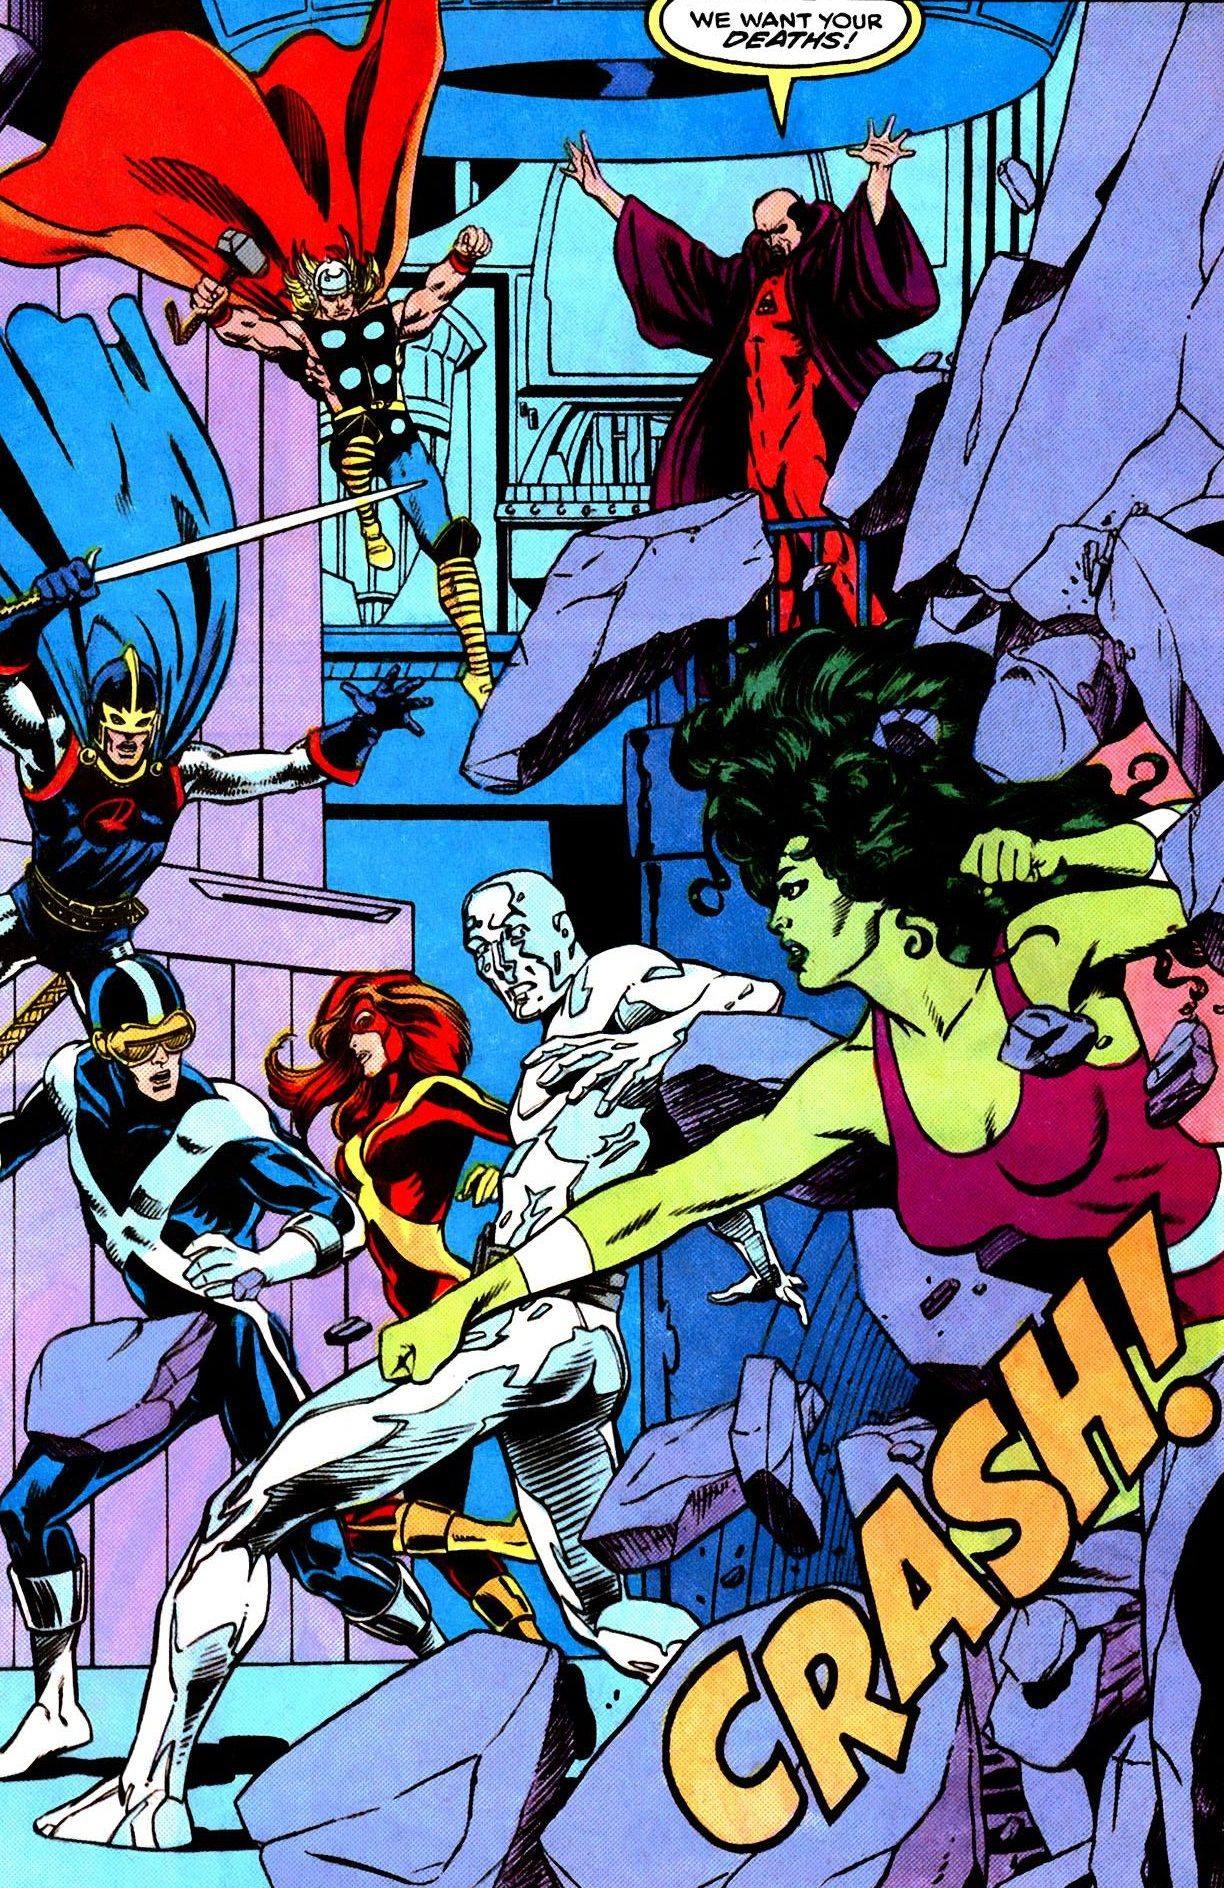 X Men Vs The Avengers From X Factor 32 By Steve Lightle We Want Your Deaths Marvel Superheroes Superhero Villains Comic Book Heroes